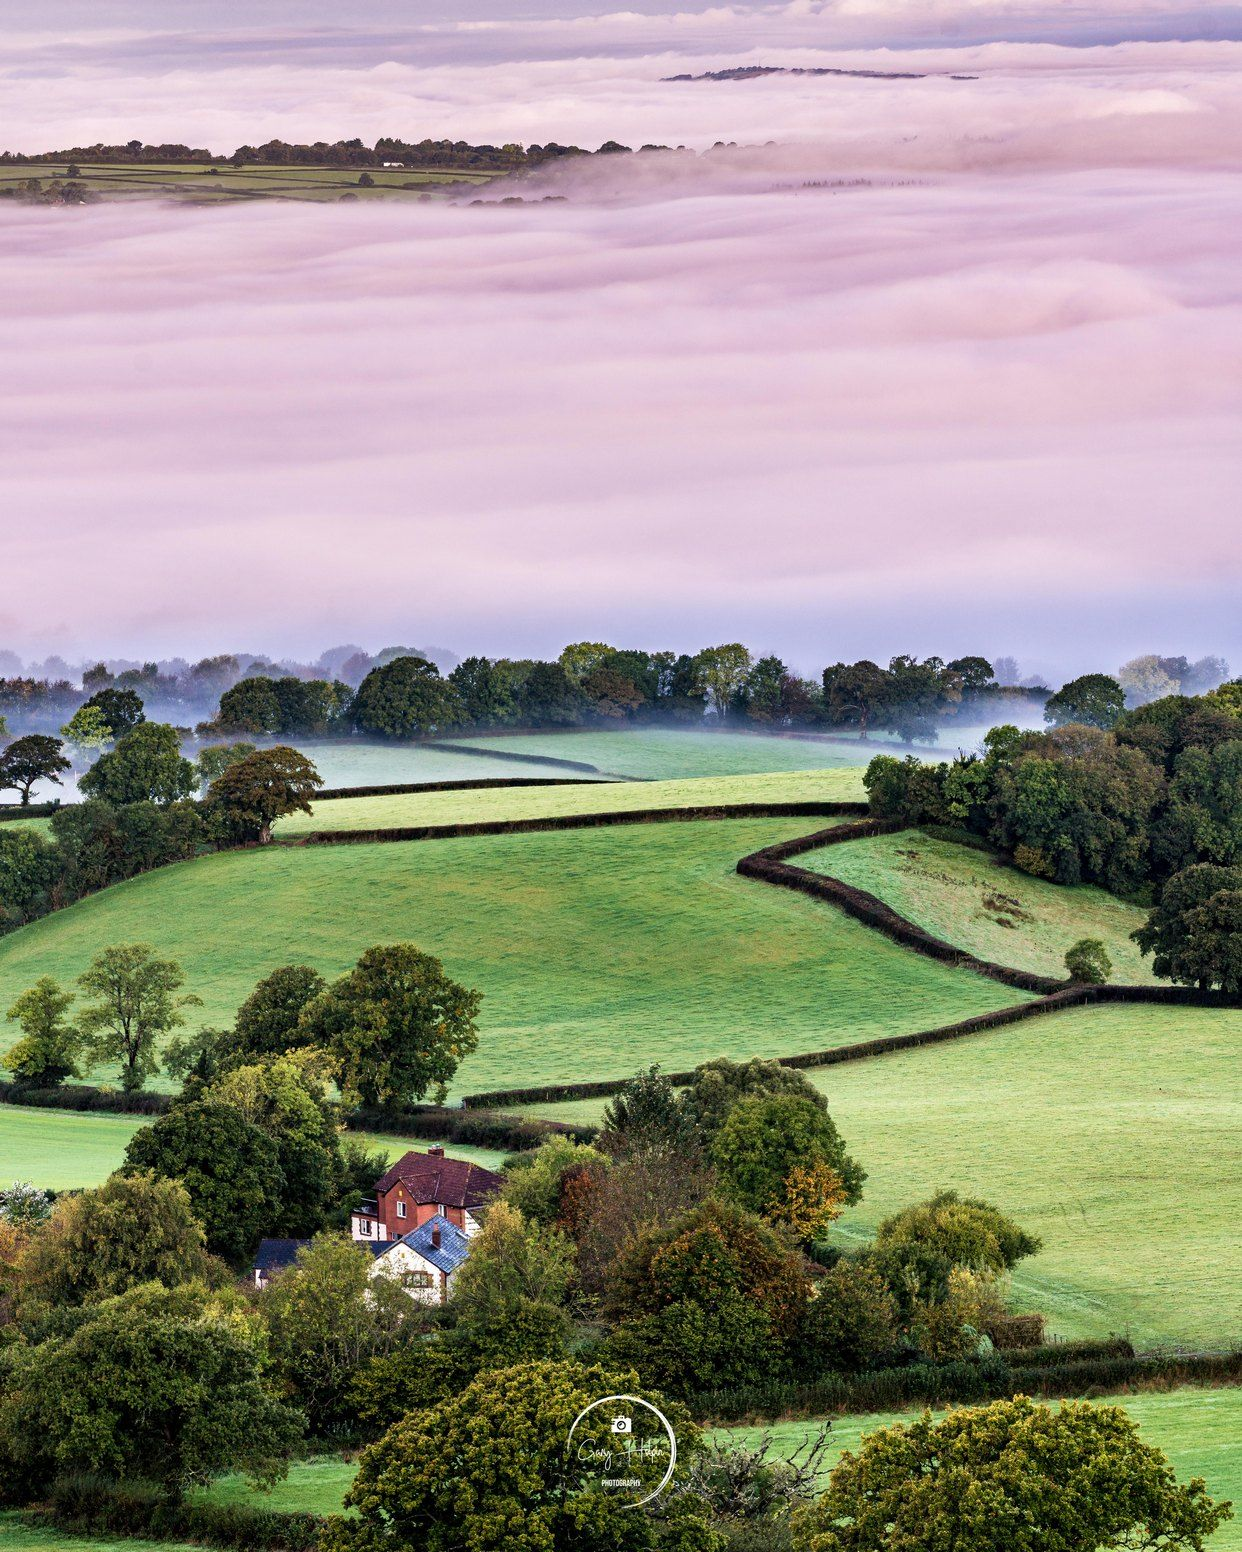 Today's photo is a foggy autumn morning over the beautiful East Devon countryside.... (click to see full photo) #Devon #LoveDevon   @ThePhotoHour @earthandclouds @VisitDevon @visitsouthdevon @EastDevonExcell https://t.co/IS4DLMct1h